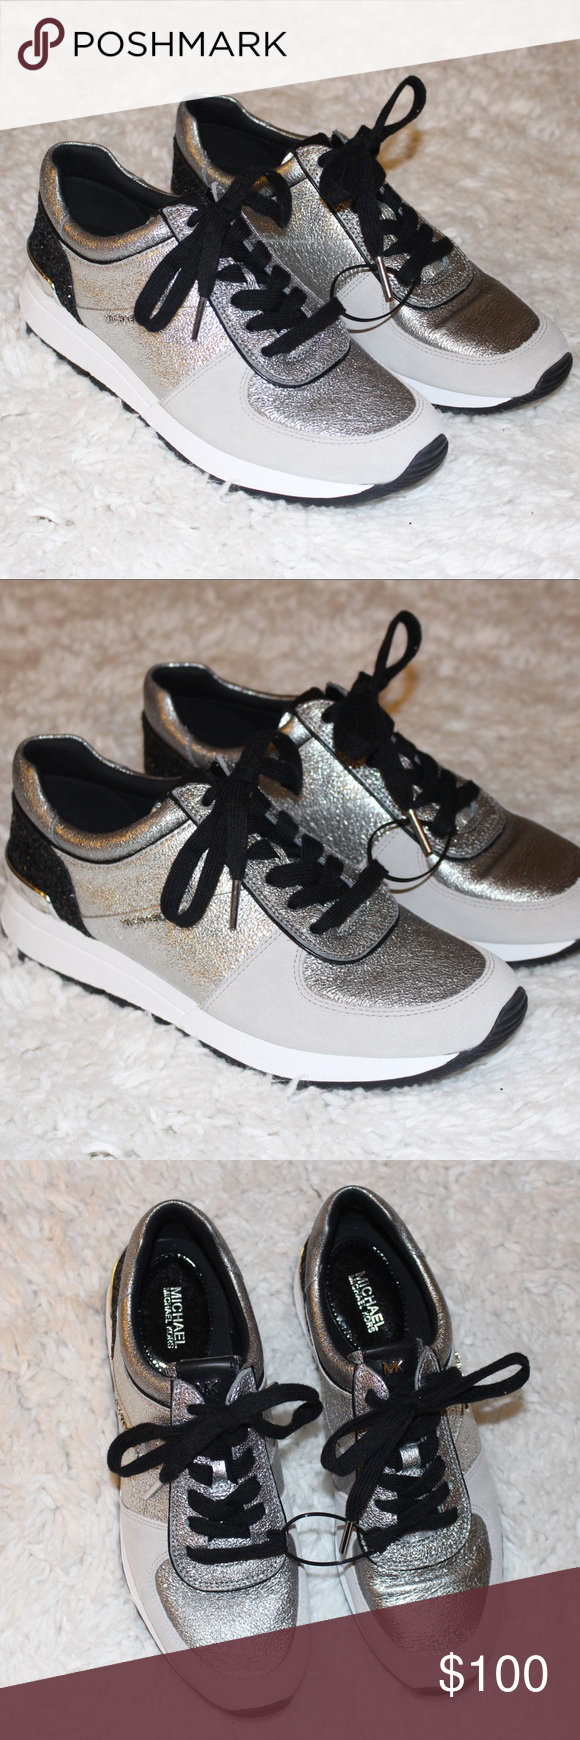 cd065786d965 Billie Chain-Mesh and Leather Michael Kors Shoes Sneakers. Black Silver.  Size 7.5 Brand new